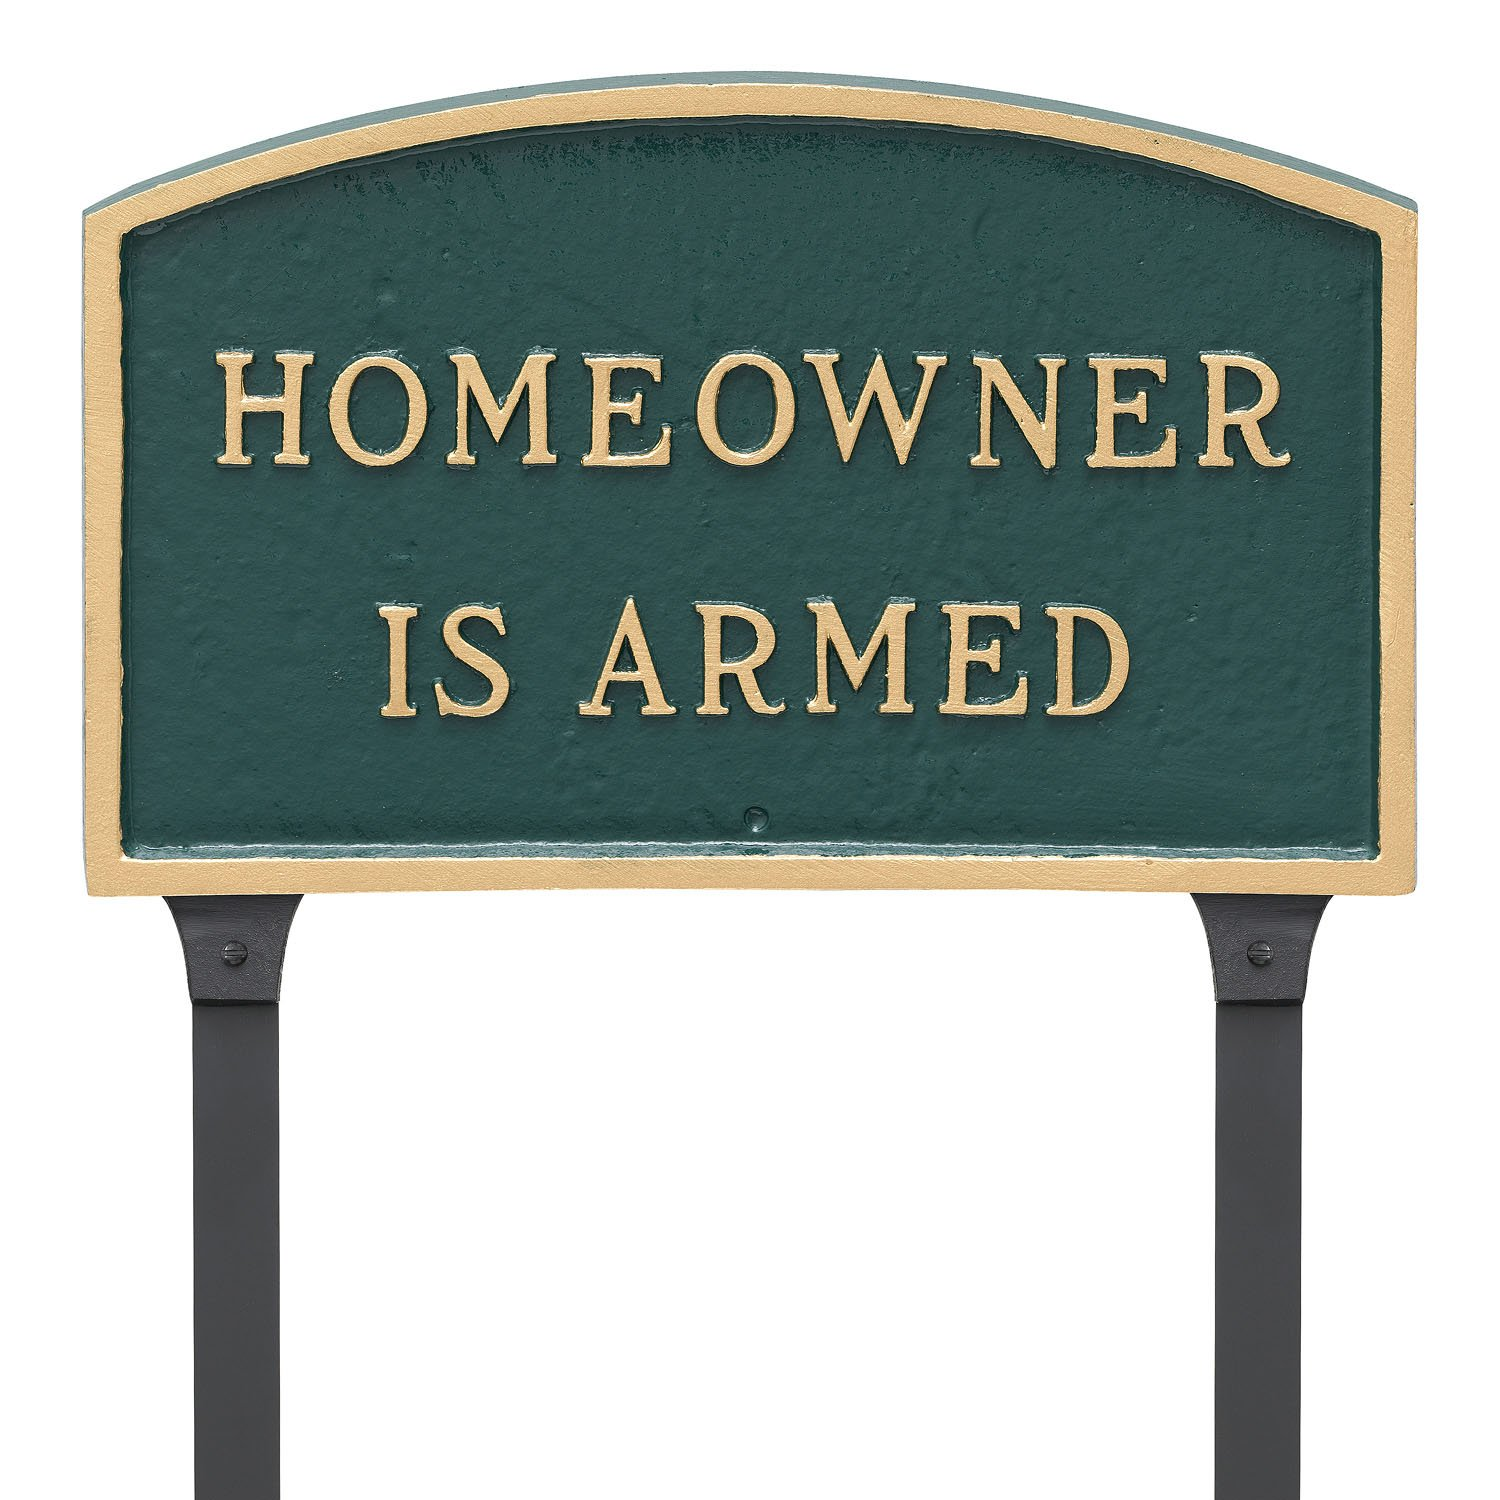 Montague Metal Products 13'' x 21'' Arch Homeowner is Armed Statement Plaque with 23'' Lawn Stake, Green/Gold by Montague Metal Products